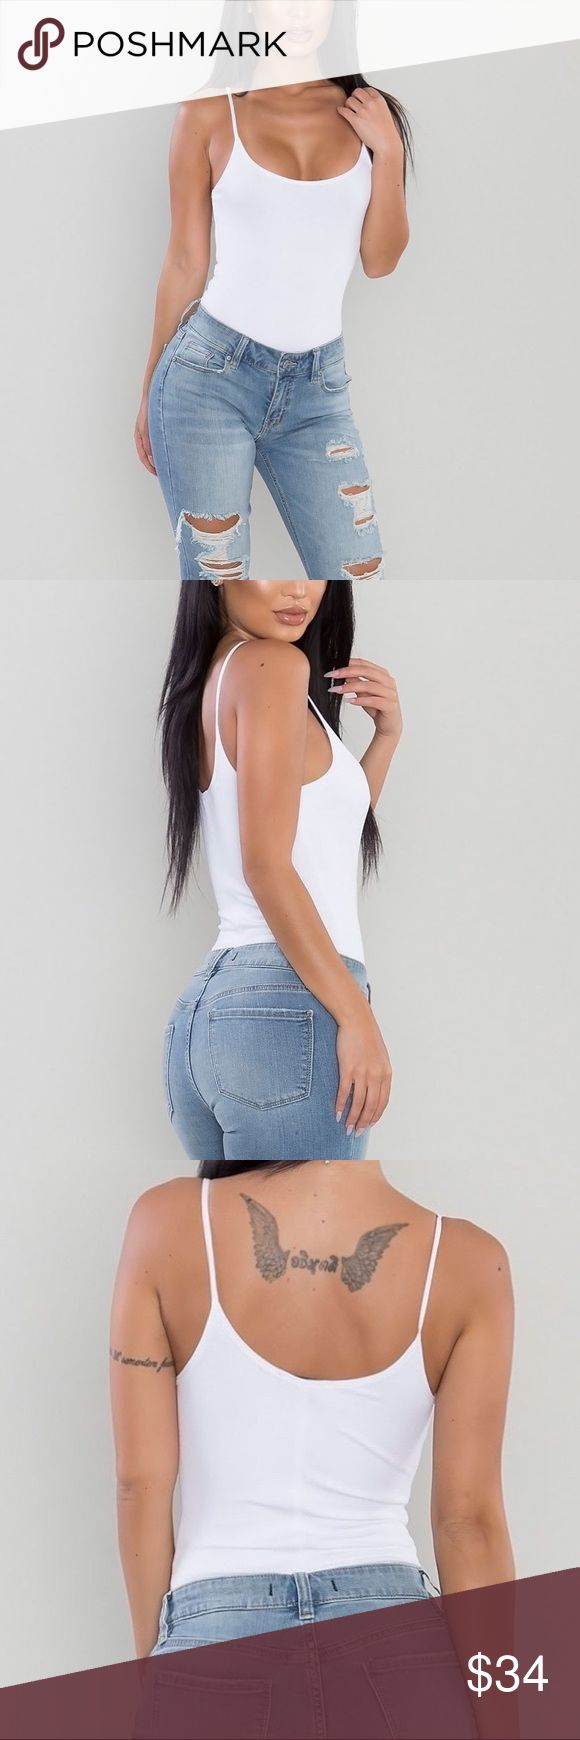 Shae Ribbed Cami Bodysuit [White] I love simple pieces like this ribbed bodysuit that I can layer underneath clothing. Wear it alone with denim bottoms for summer or layer underneath a cardigan for fall! Perfect for all year round! Material is so soft & stretchy.  Available in other colors.   * Bottom button snap closure  * 95% rayon, 5% Spandex * Hand wash cold Other